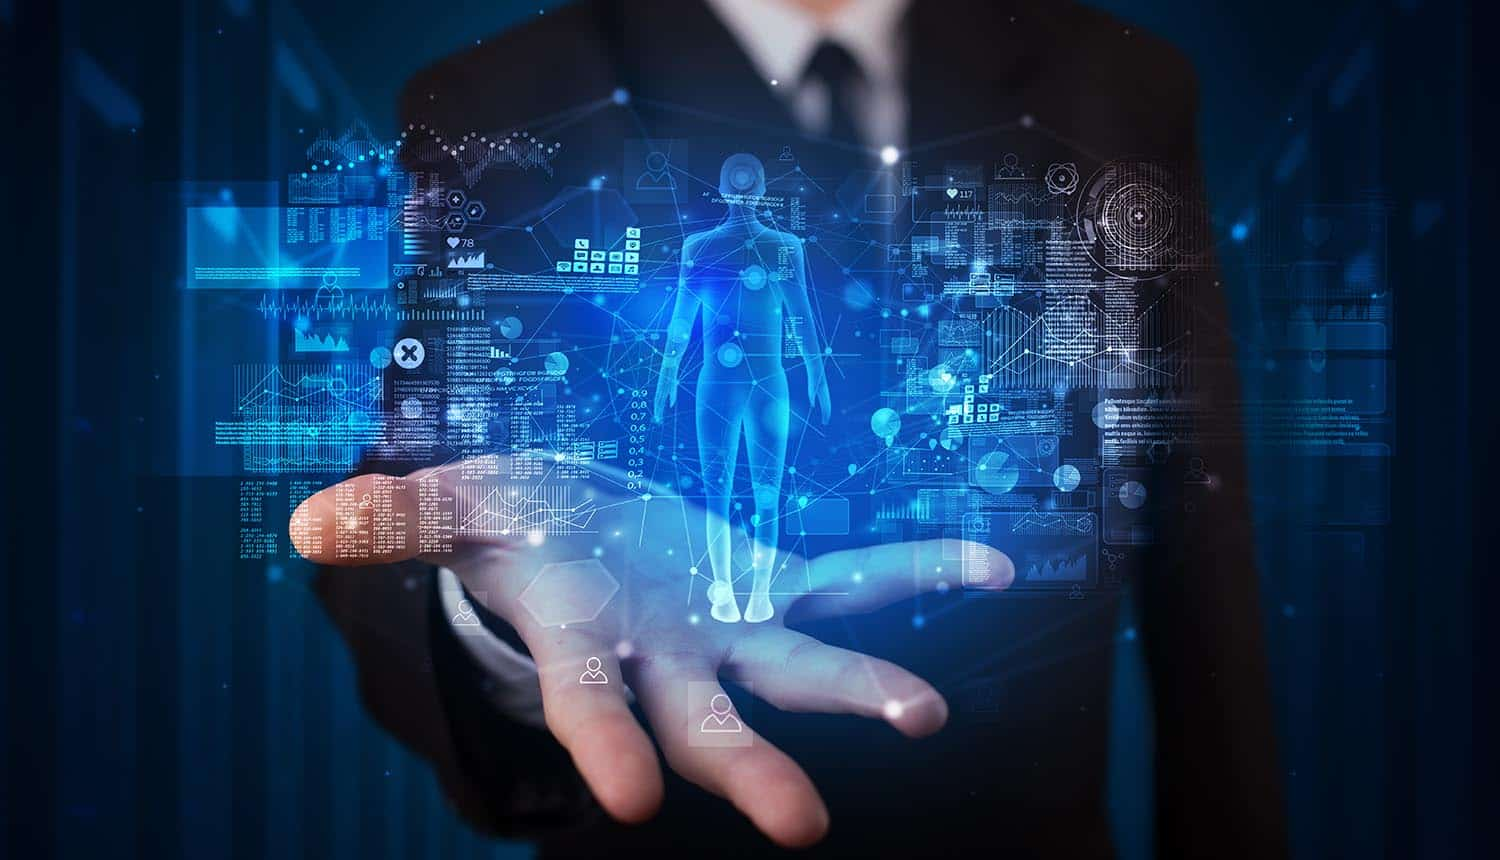 Man holding hologram projection displaying health related graphs and symbols showing use of artificial intelligence in healthcare